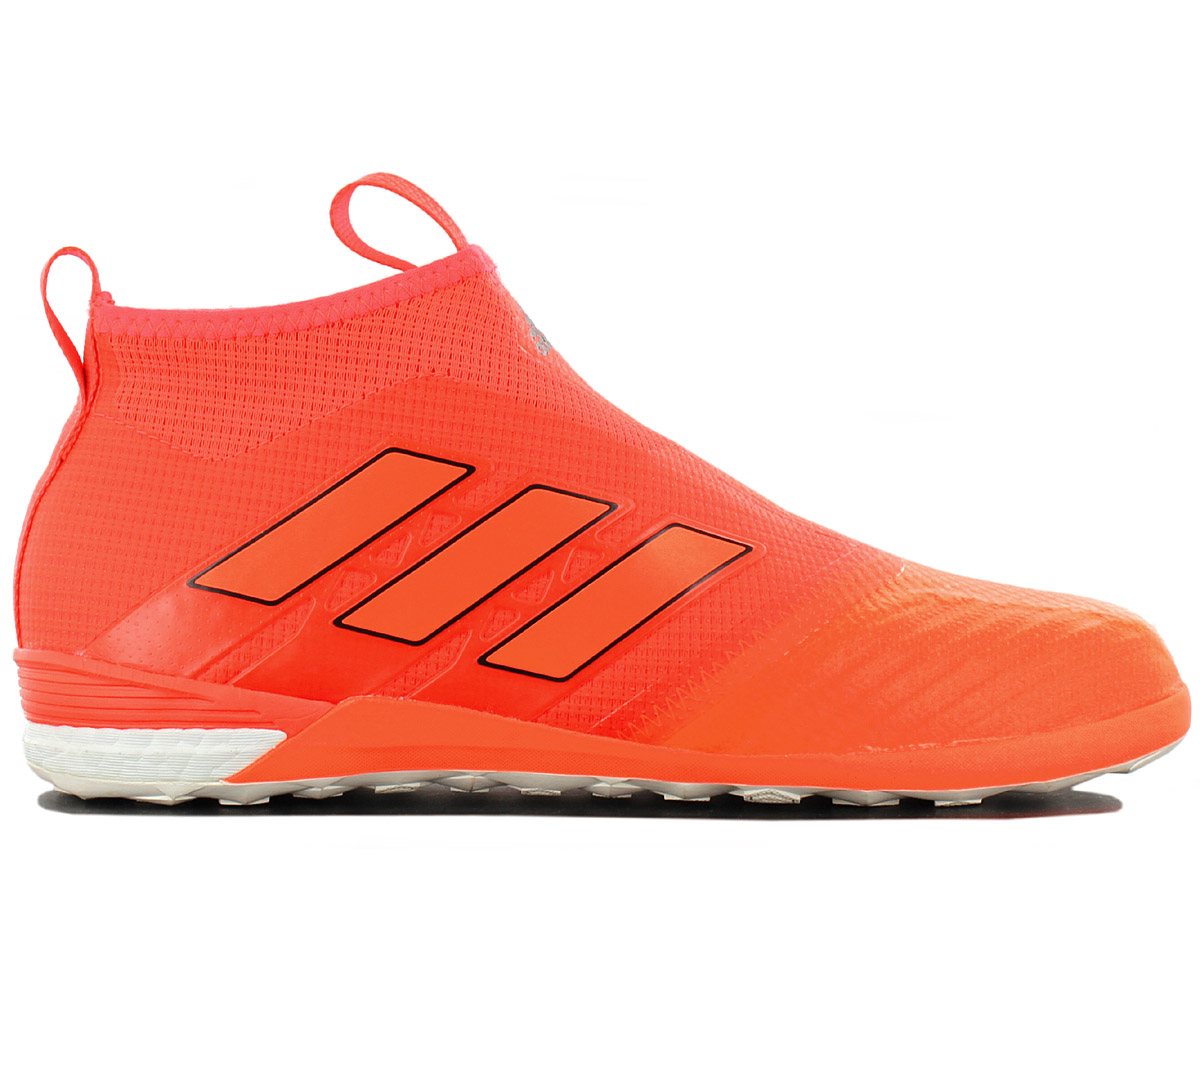 the latest 30127 7faa8 Adidas Ace Tango 17 + Boost Purecontrol Indoor Mens Football